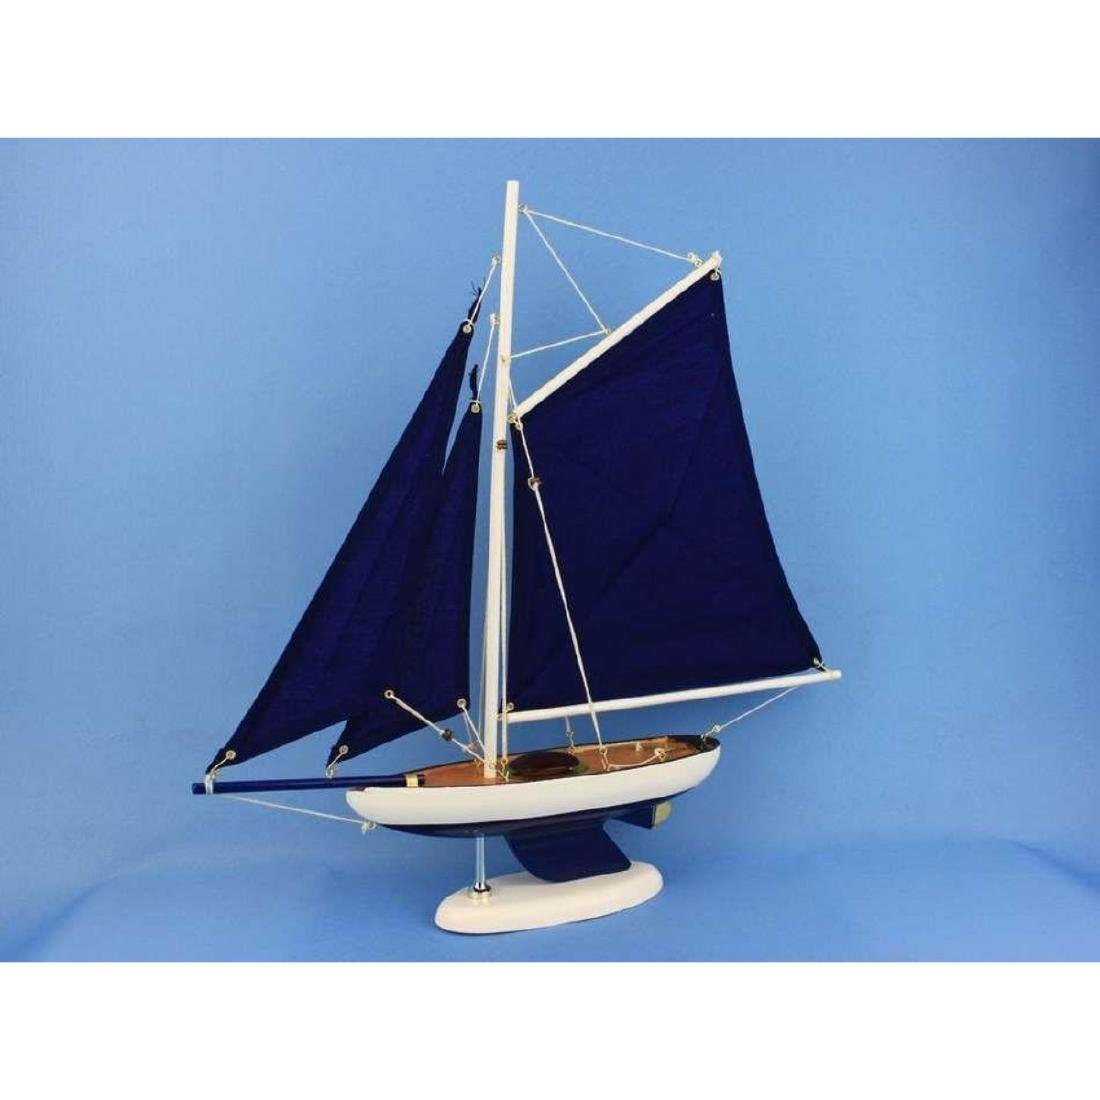 Wooden Bermuda Sloop Dark Blue Model Sailboat - 3